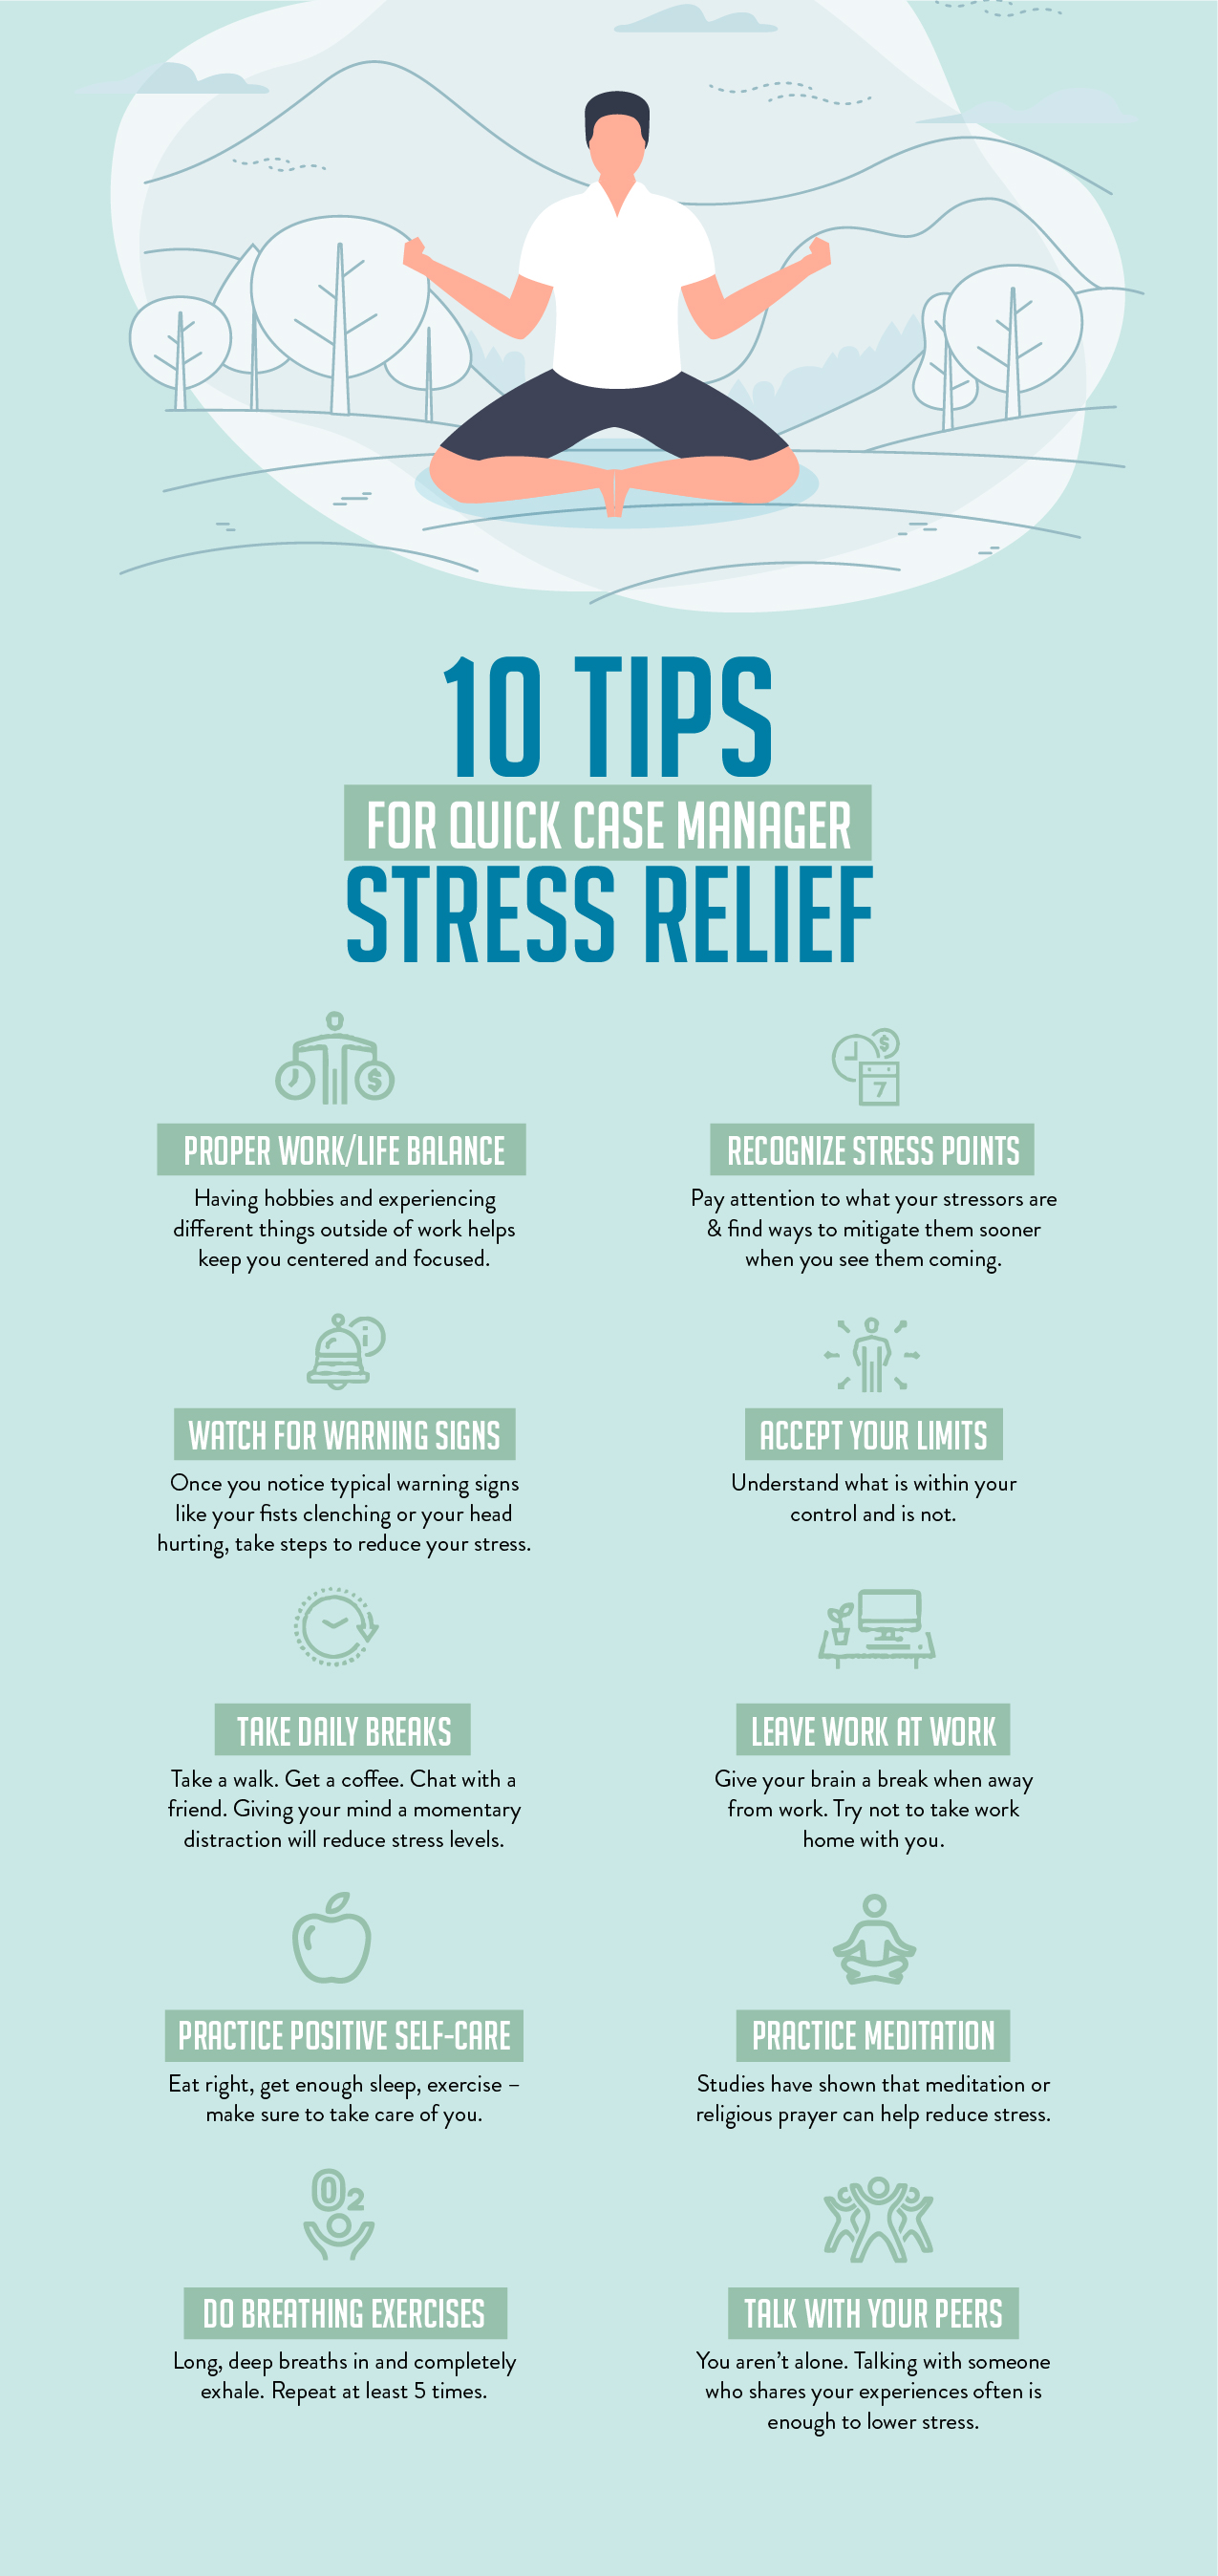 10 Tips for Quick Case Manager Stress Relief Infographic